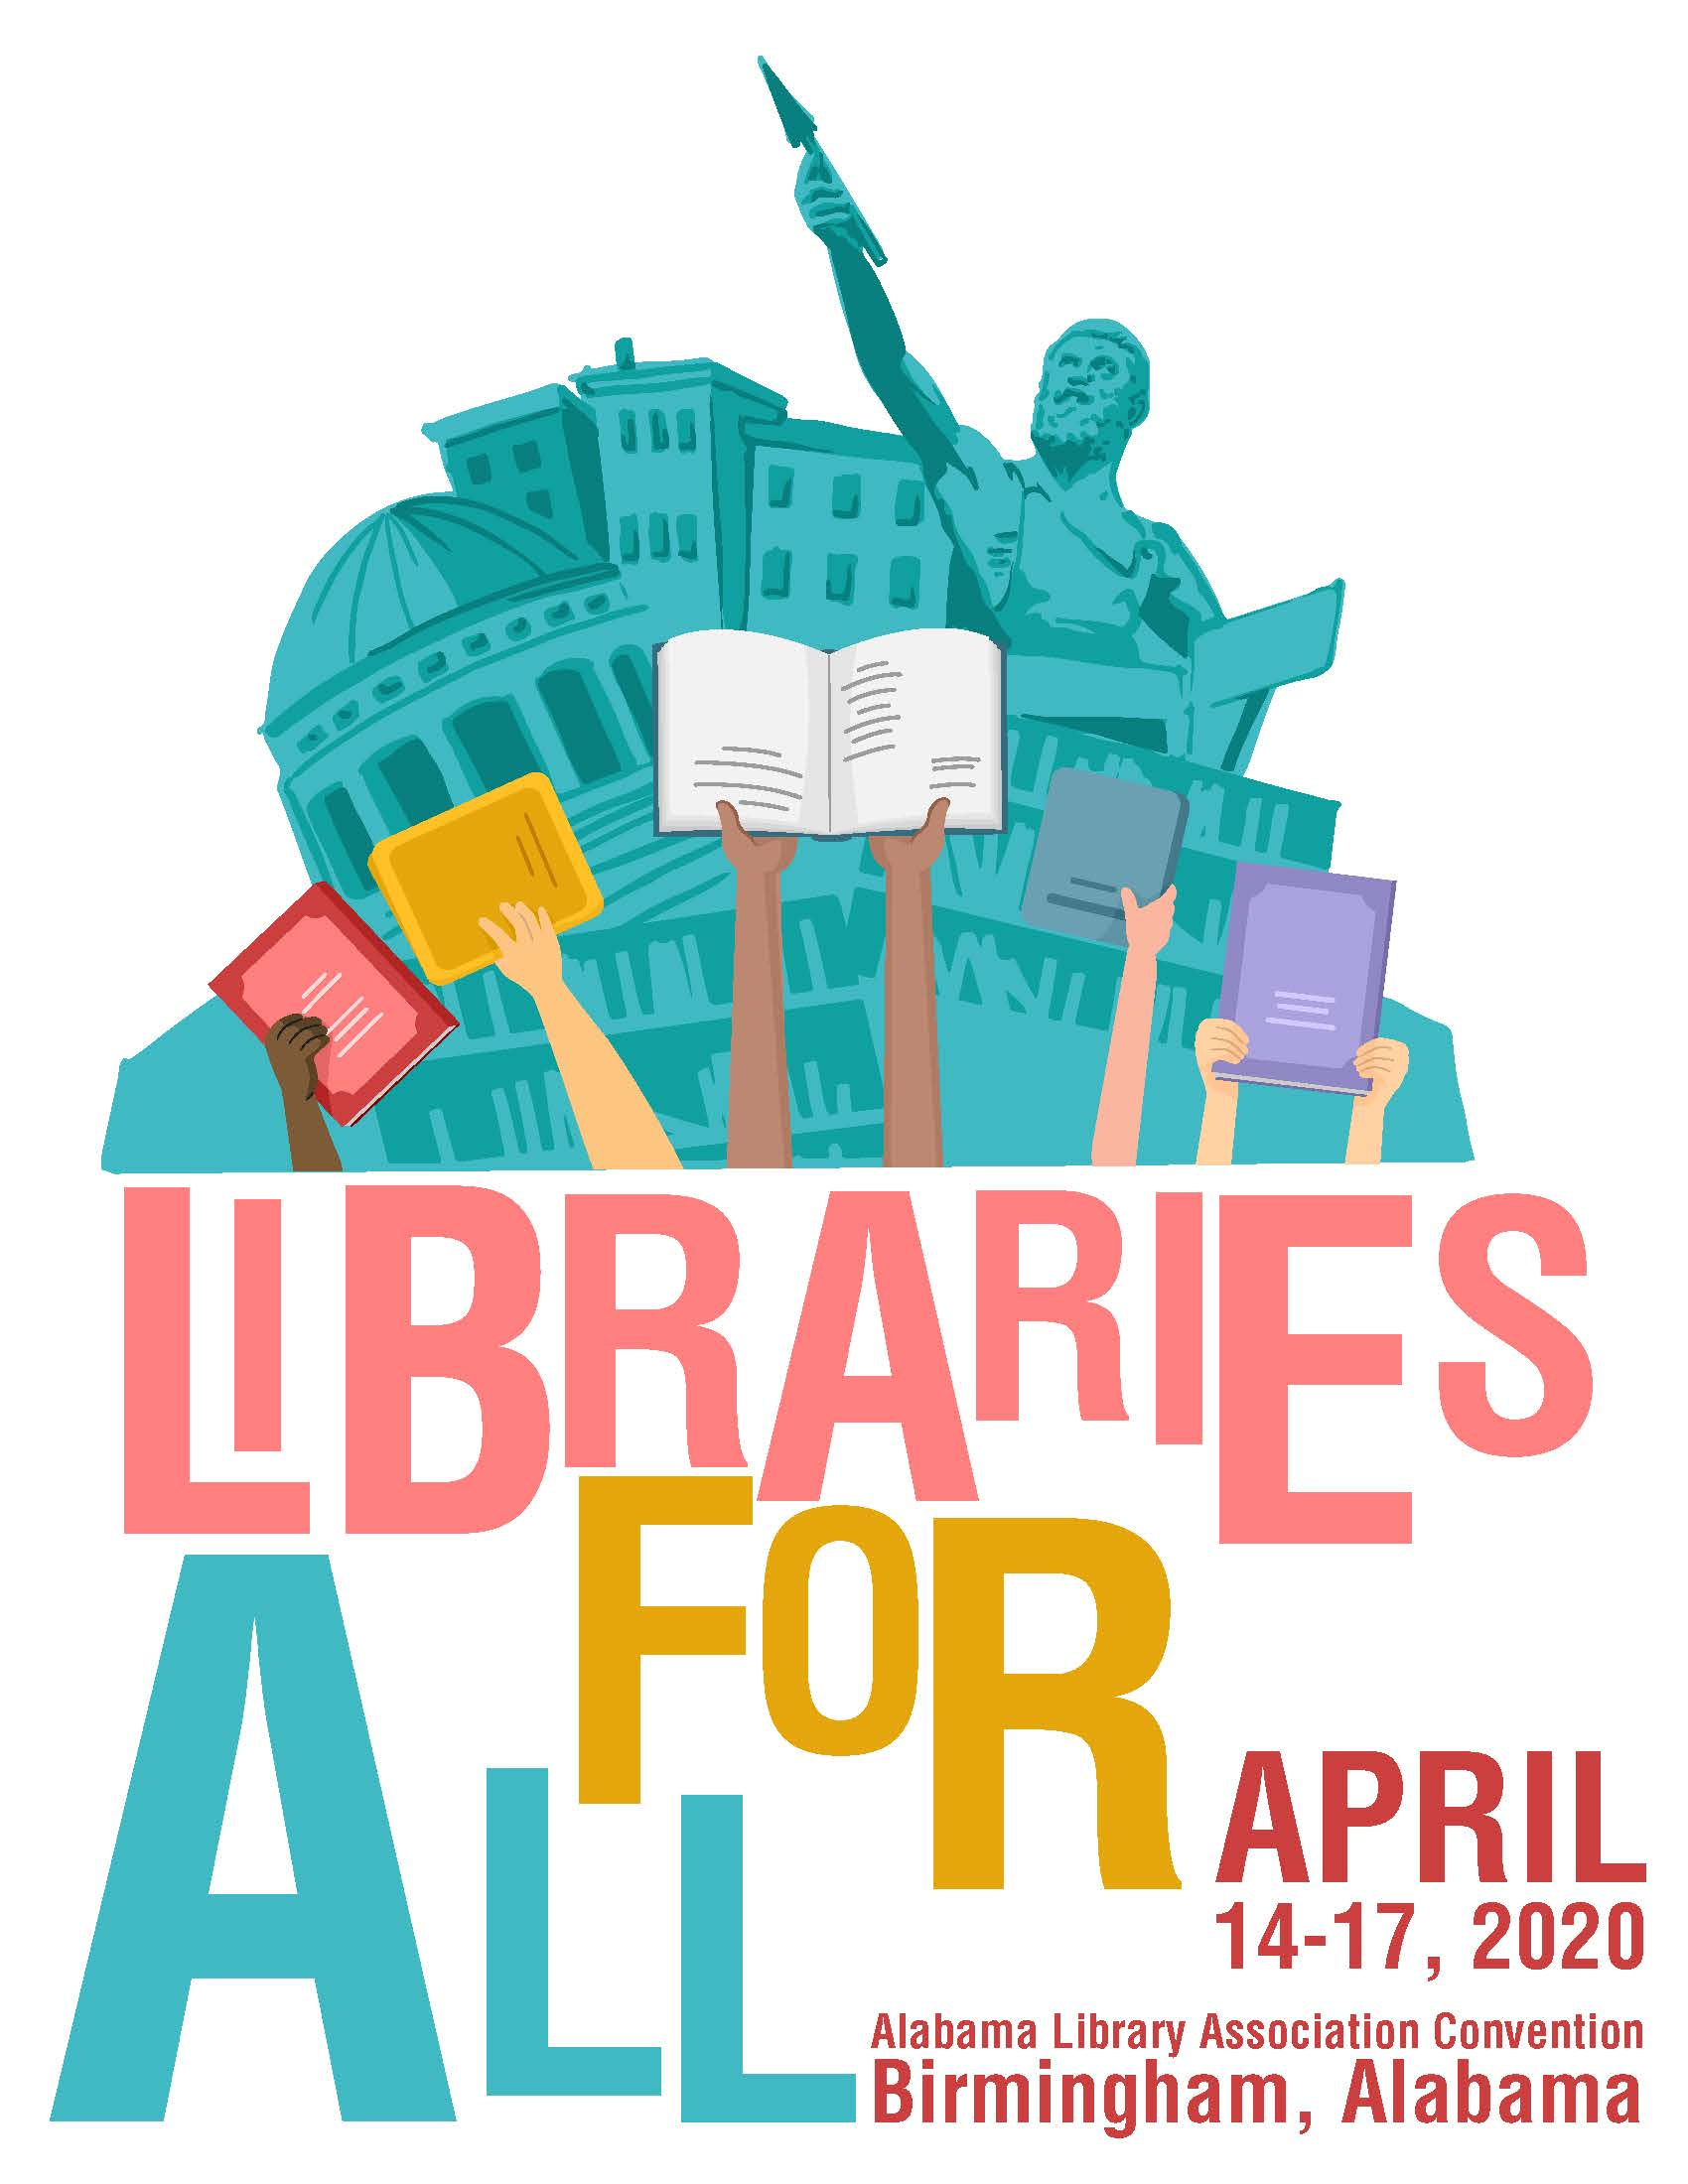 2020 ALLA Annual Convention Logo: Libraries For All